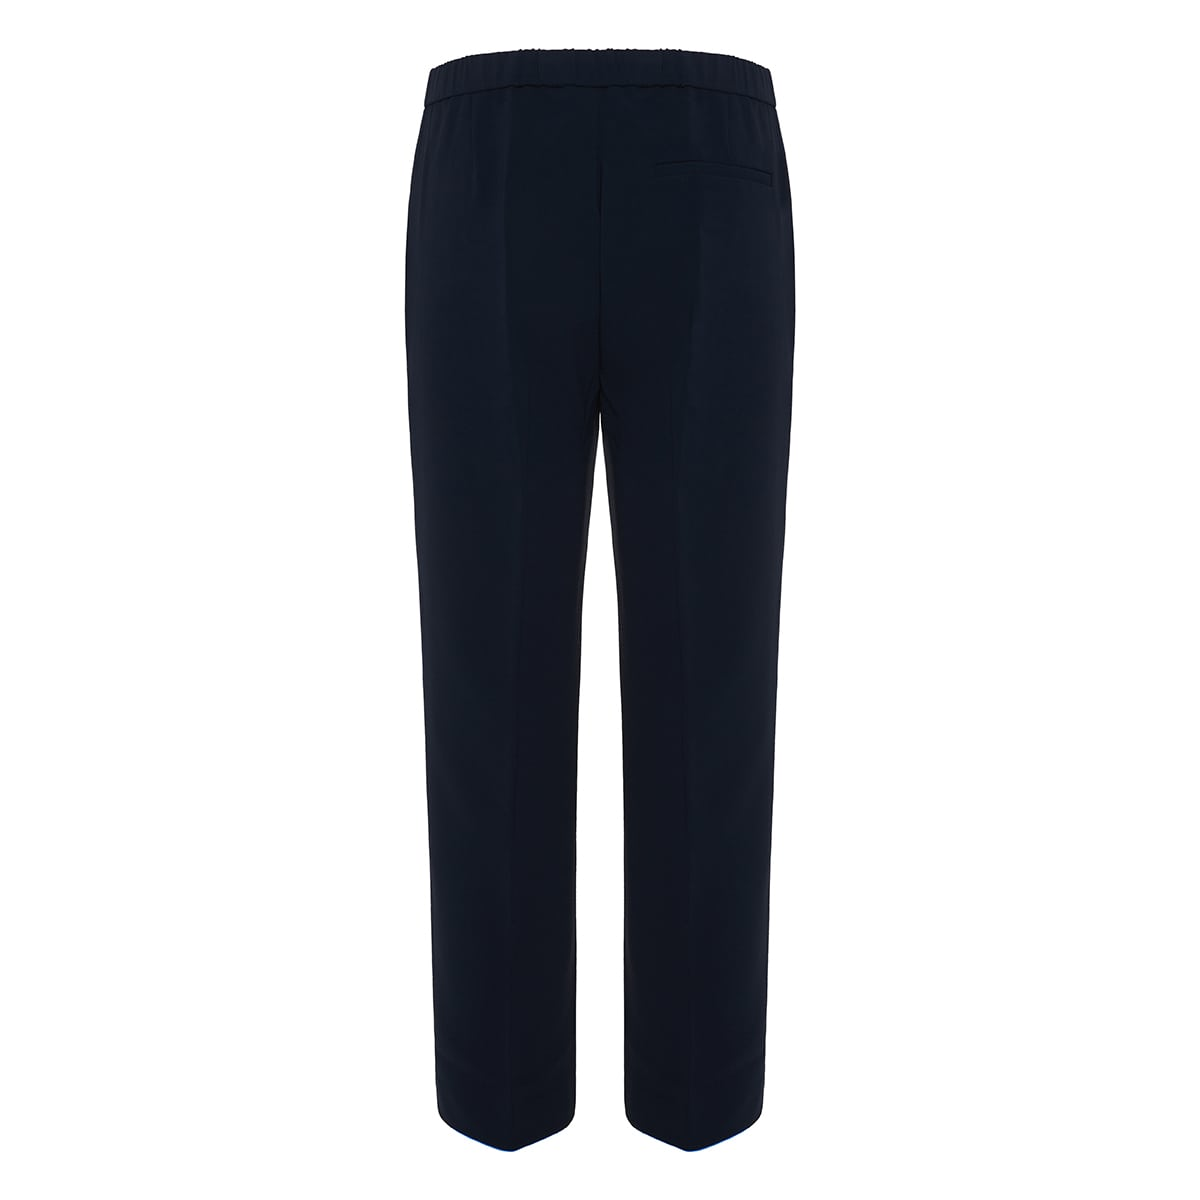 Treeca side-striped cropped trousers